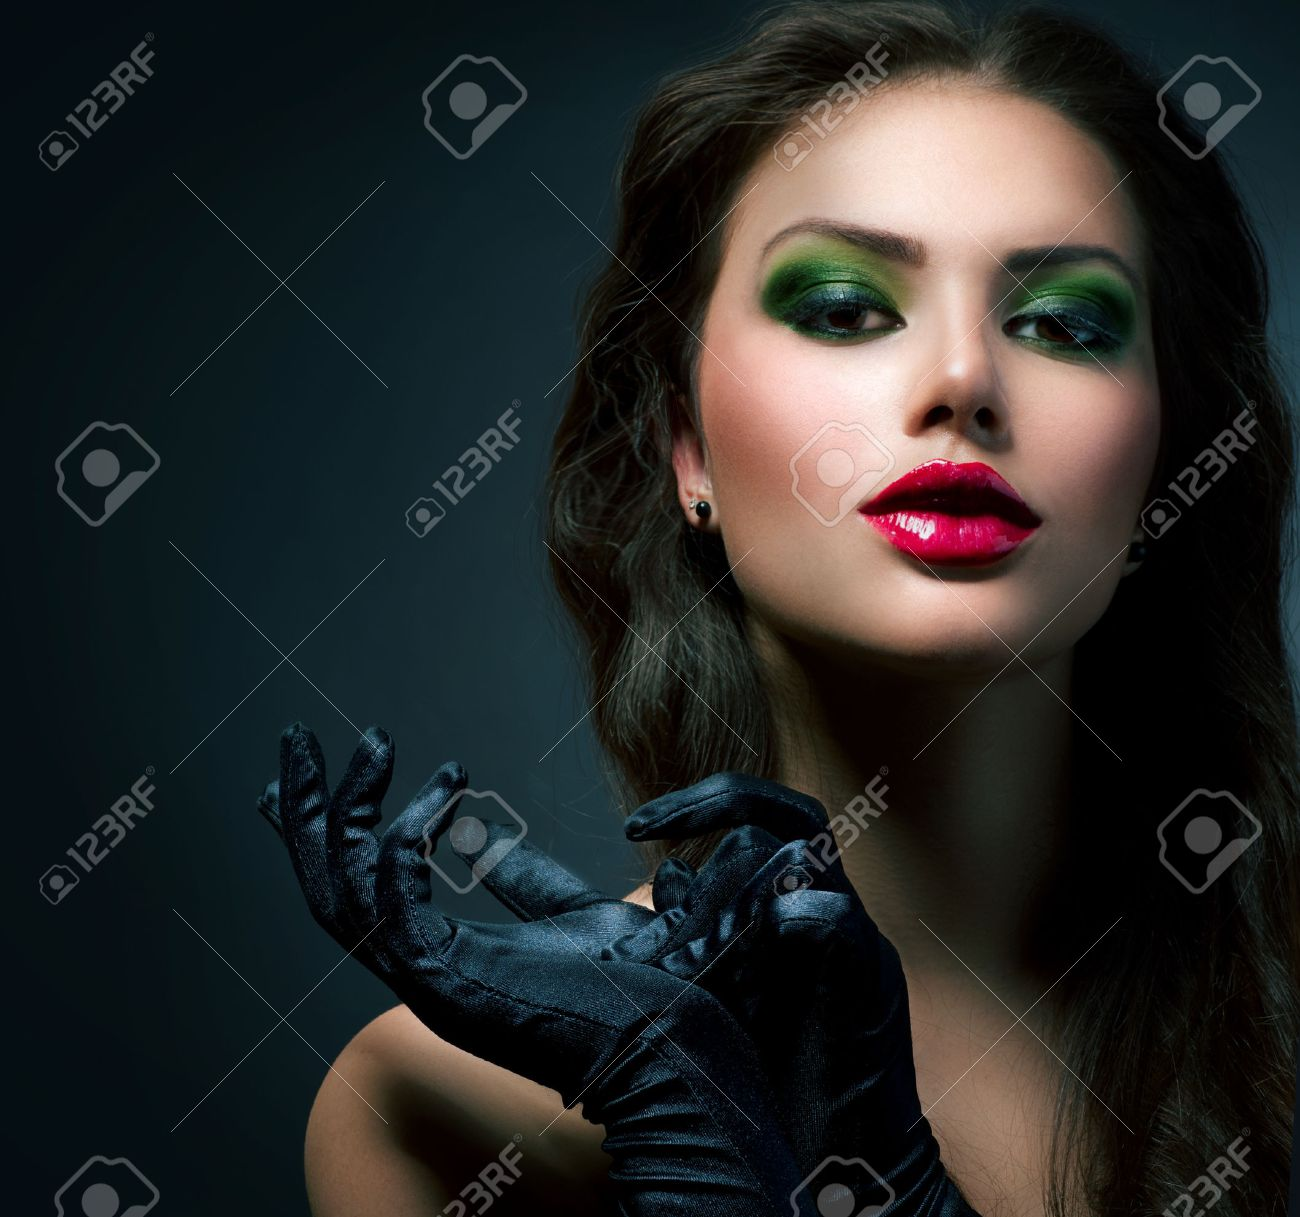 Beauty Fashion Glamour Girl  Vintage Style Model Wearing Gloves Stock Photo - 23419414